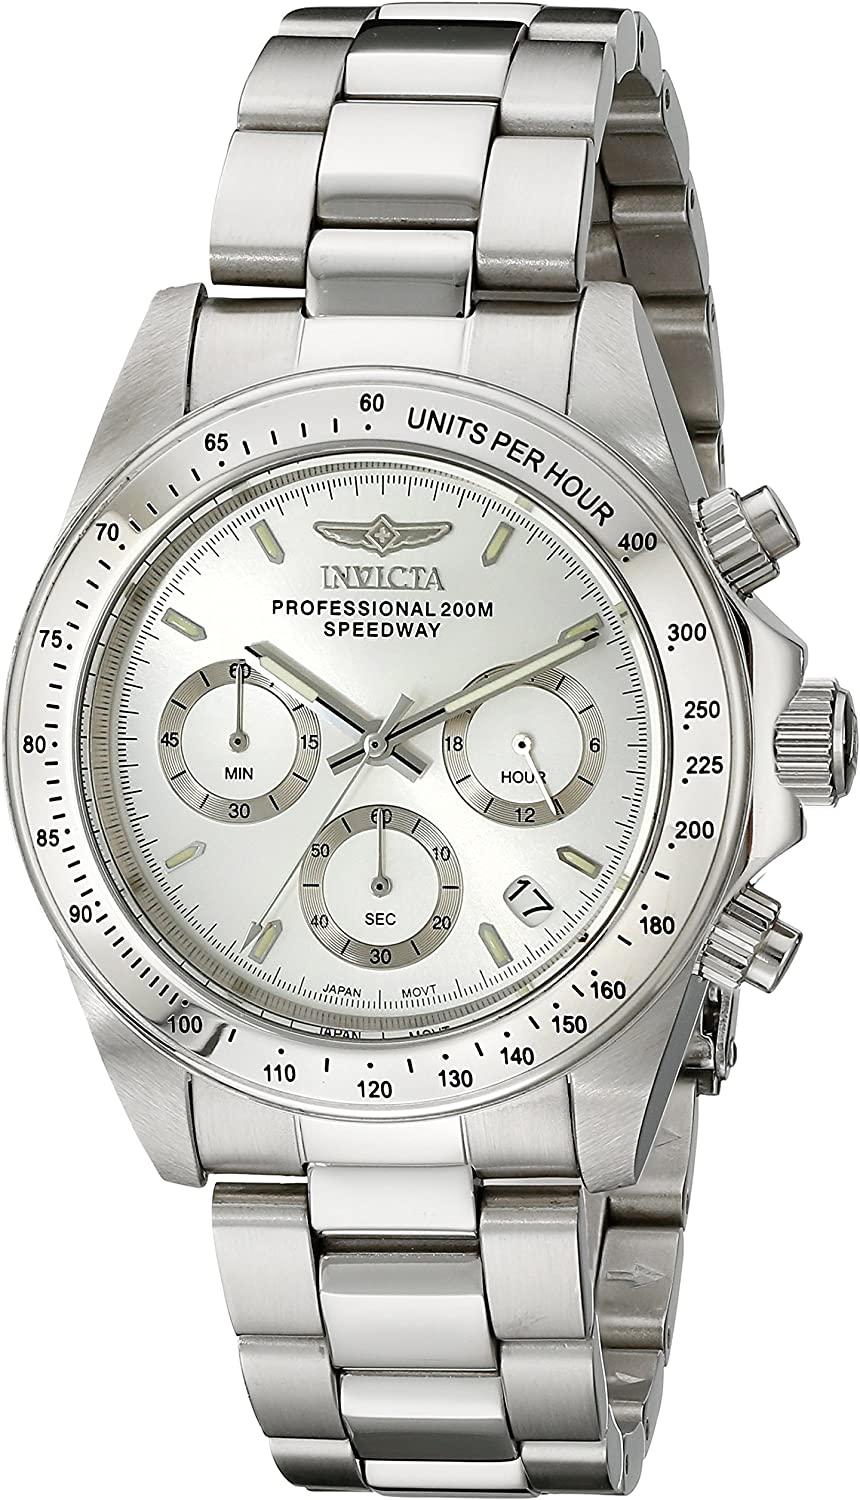 Invicta Men s 14381 Speedway Chronograph Stainless Steel Watch with Link Bracelet